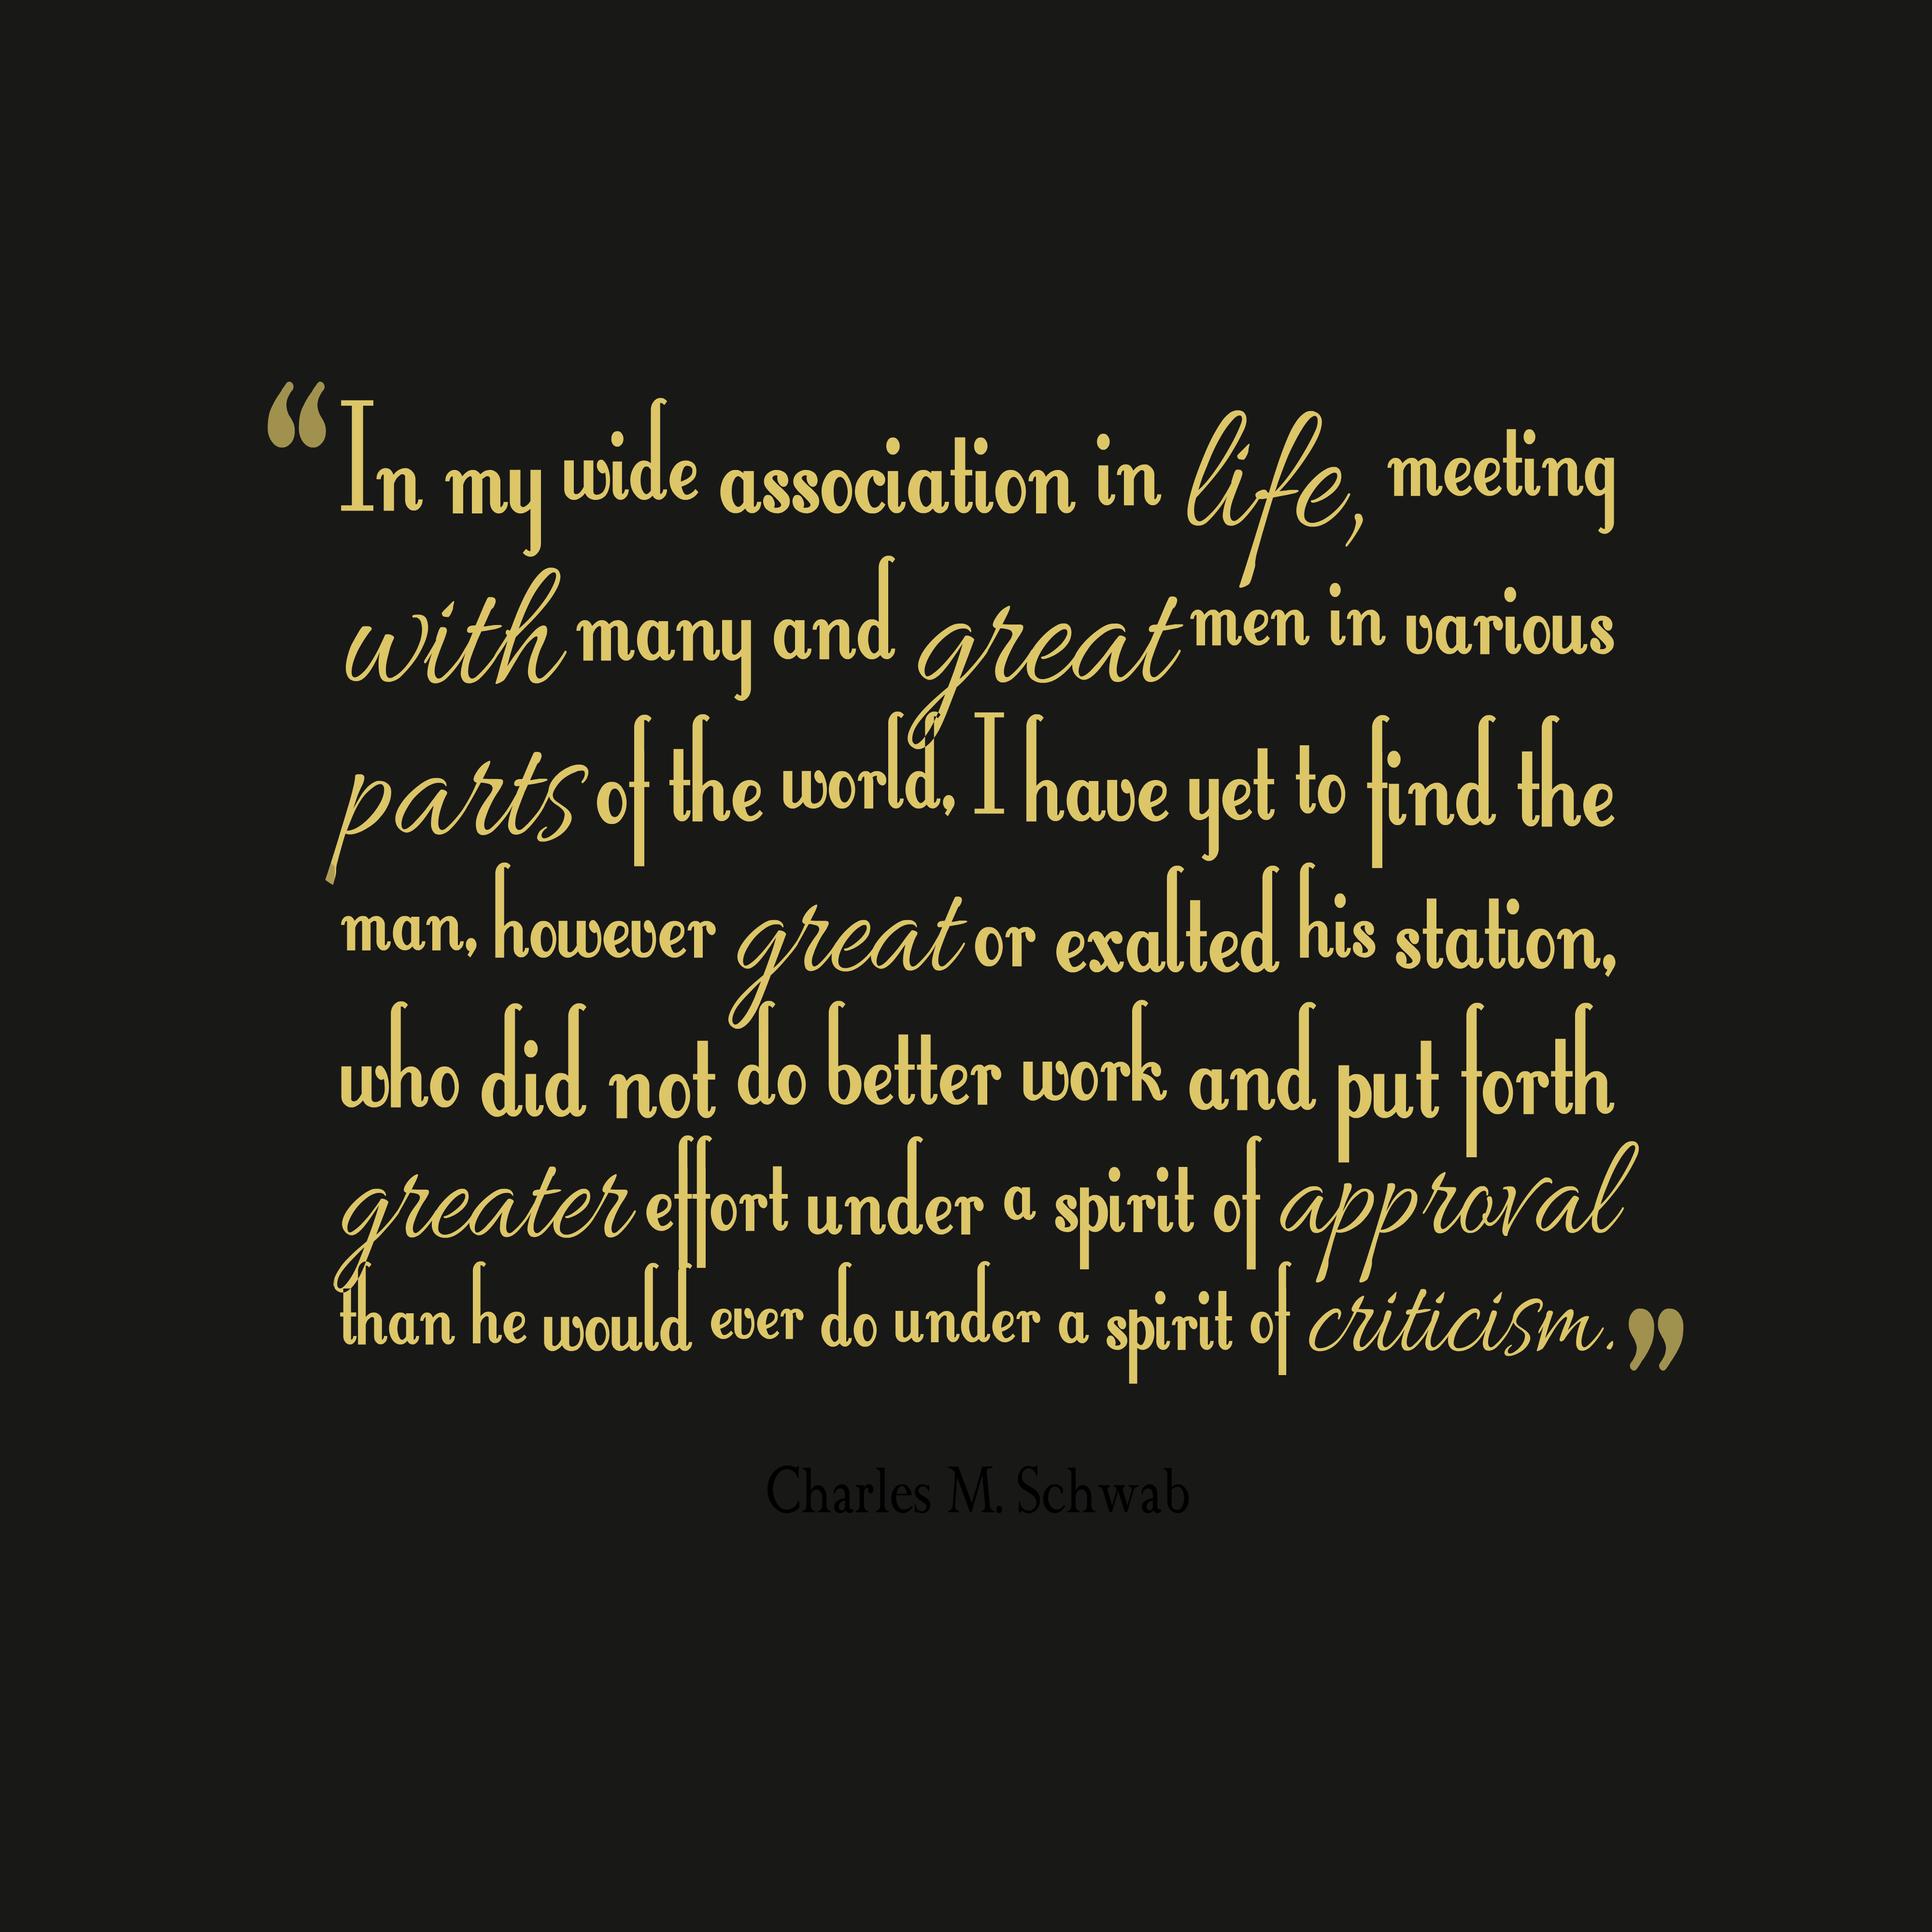 Quotes image of In my wide association in life, meeting with many and great men in various parts of the world, I have yet to find the man, however great or exalted his station, who did not do better work and put forth greater effort under a spirit of approval than he would ever do under a spirit of criticism.